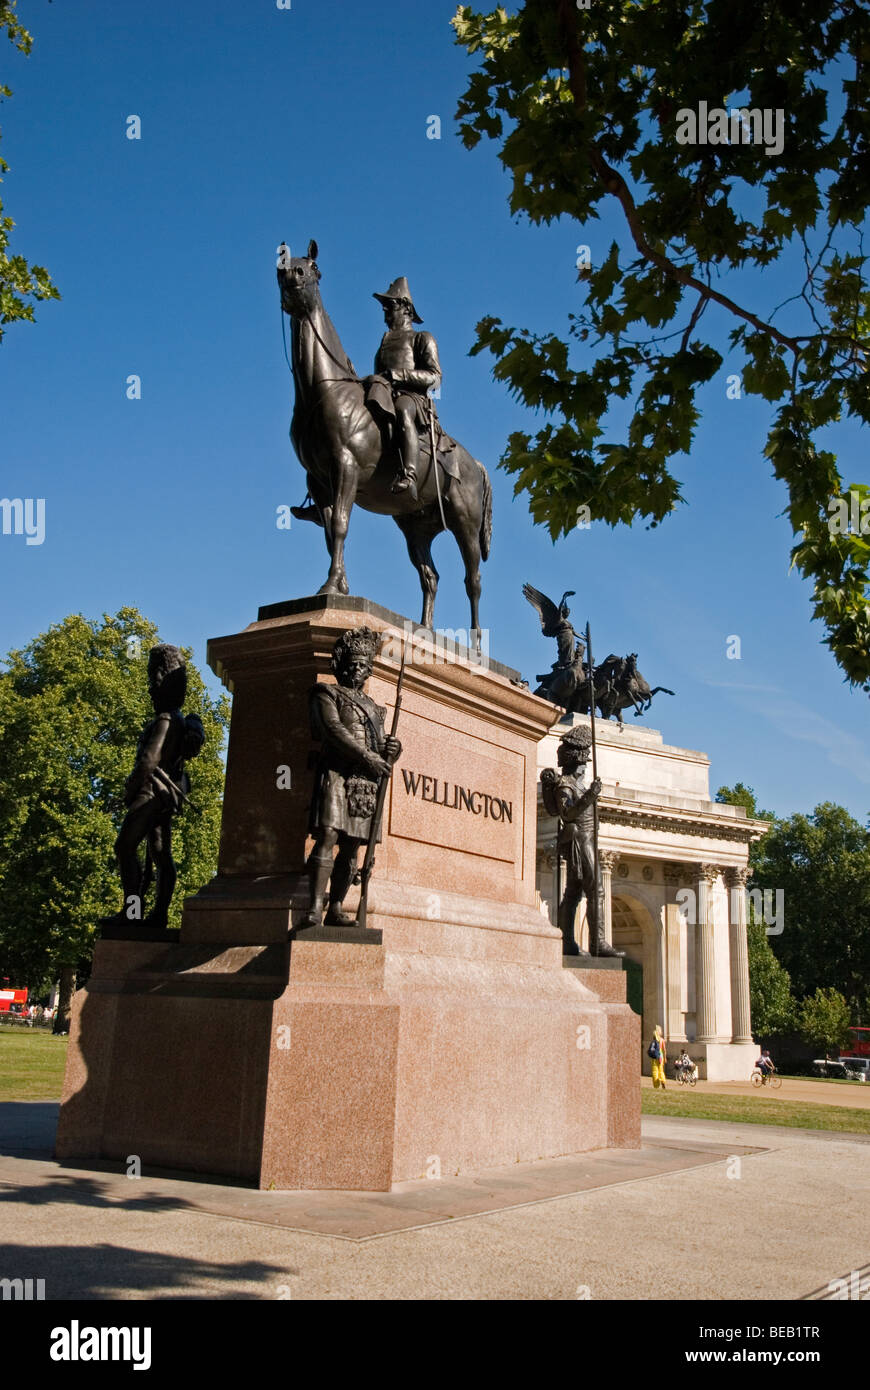 Statue of Duke of Wellington and Wellington Arch behind on sunny day, Hyde Park Corner London England UK - Stock Image